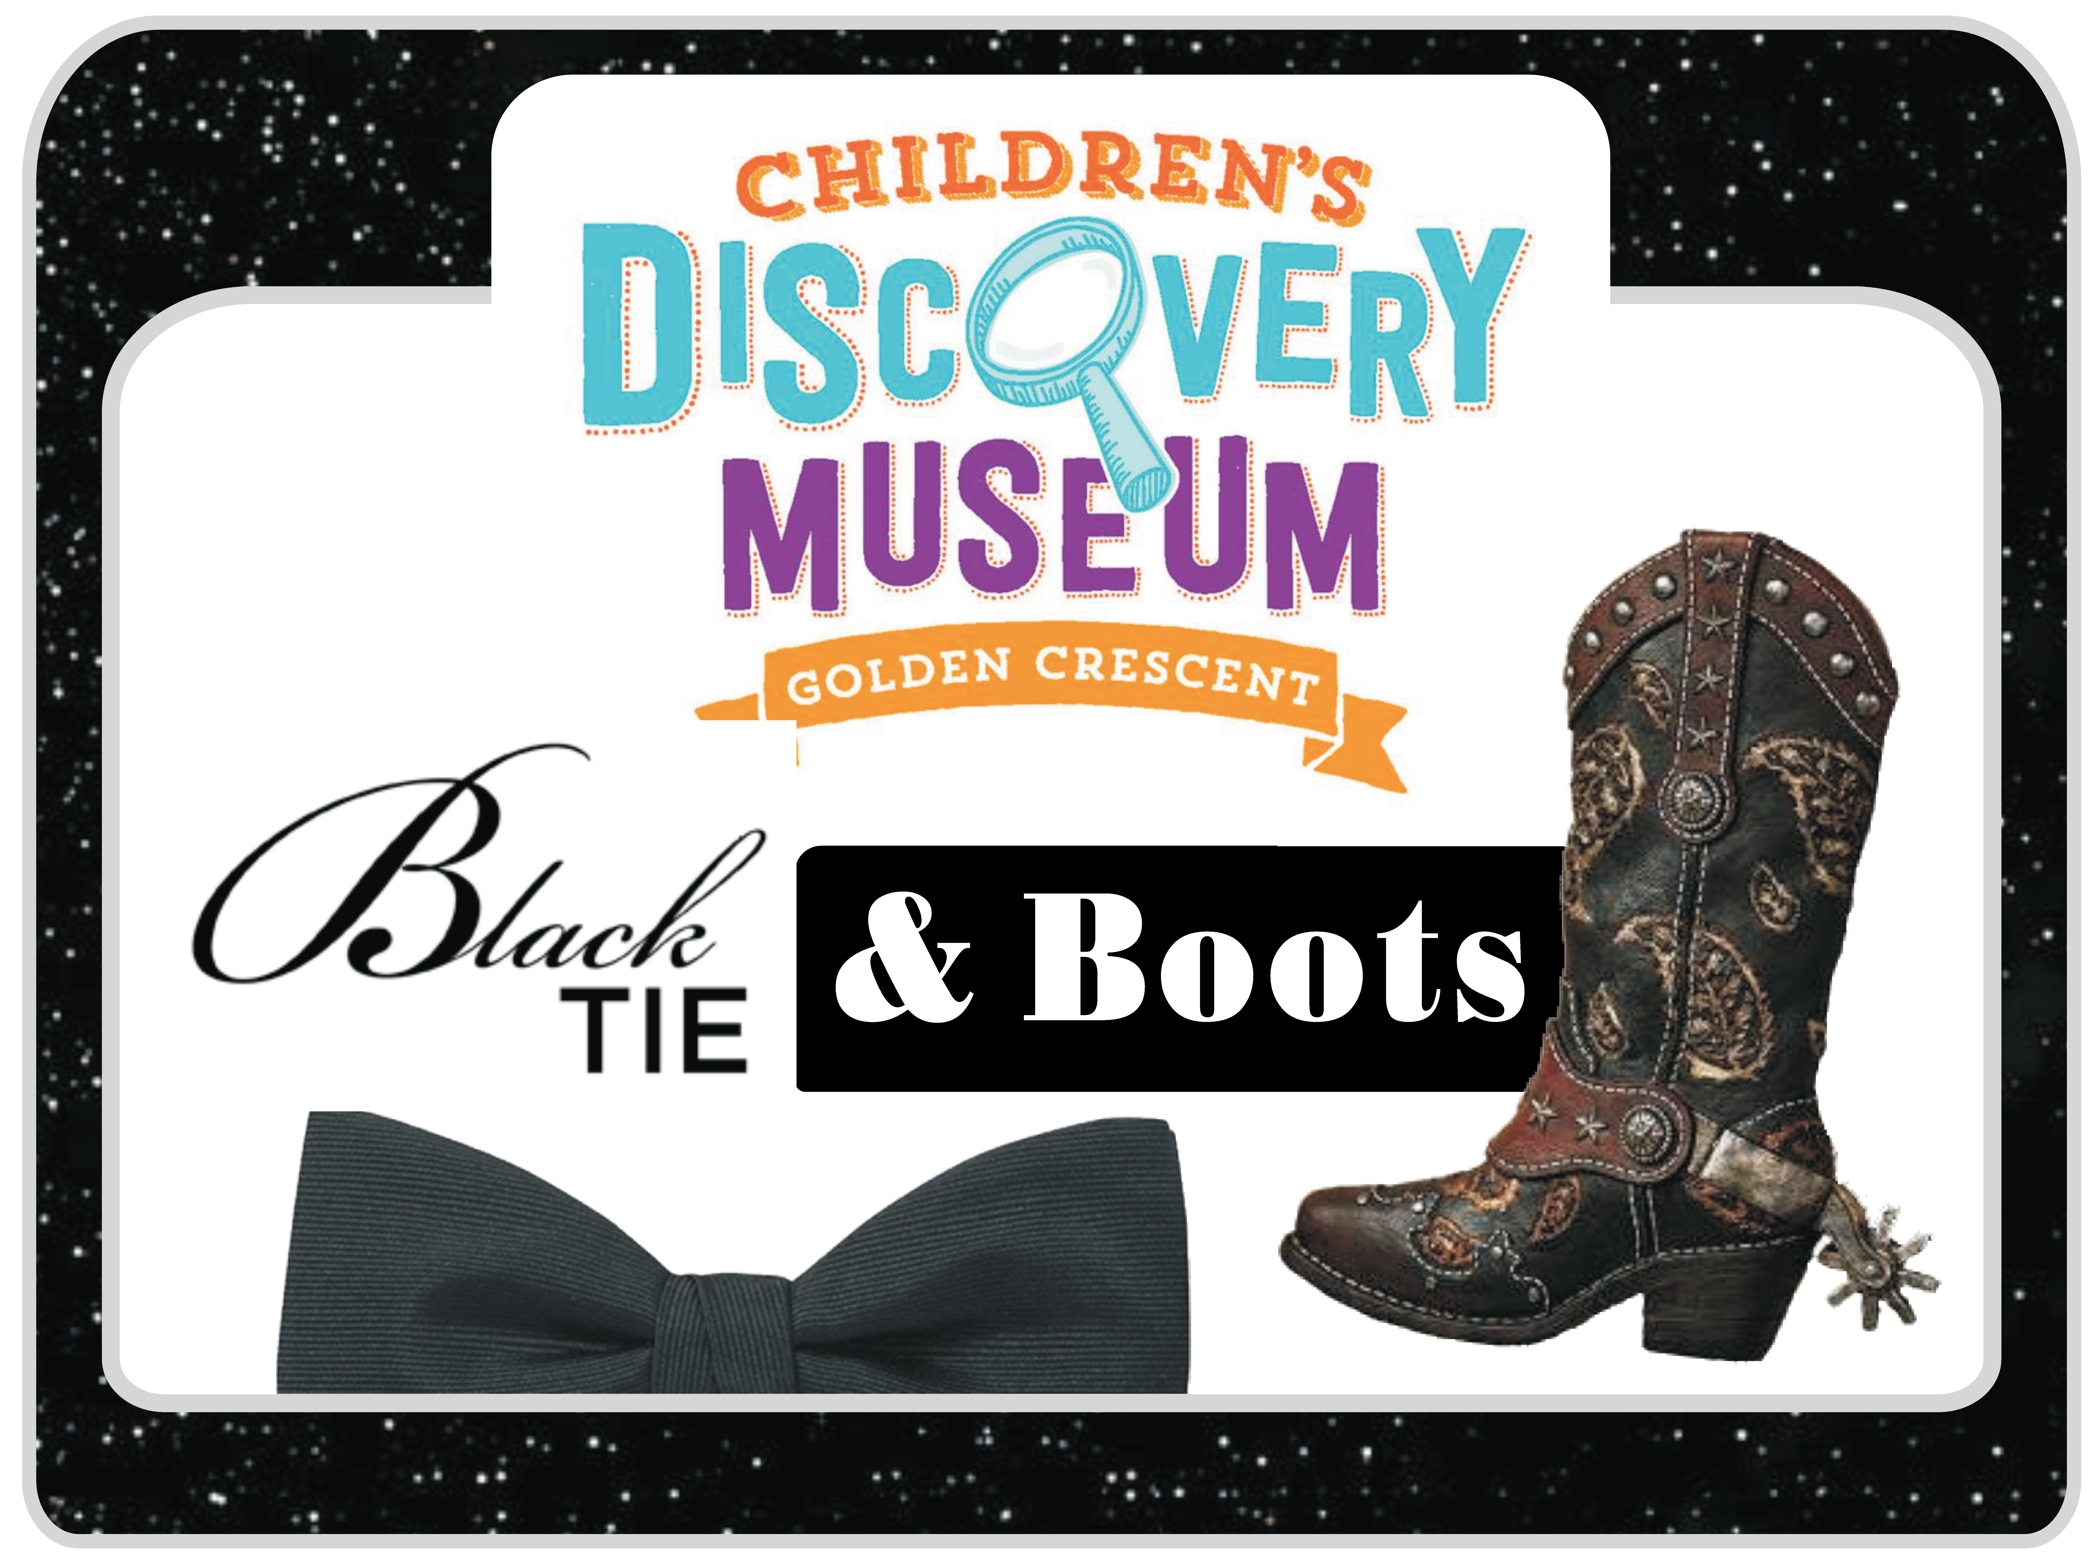 Black 20tie 20  20boots 20  20children s 20discovery 20museum